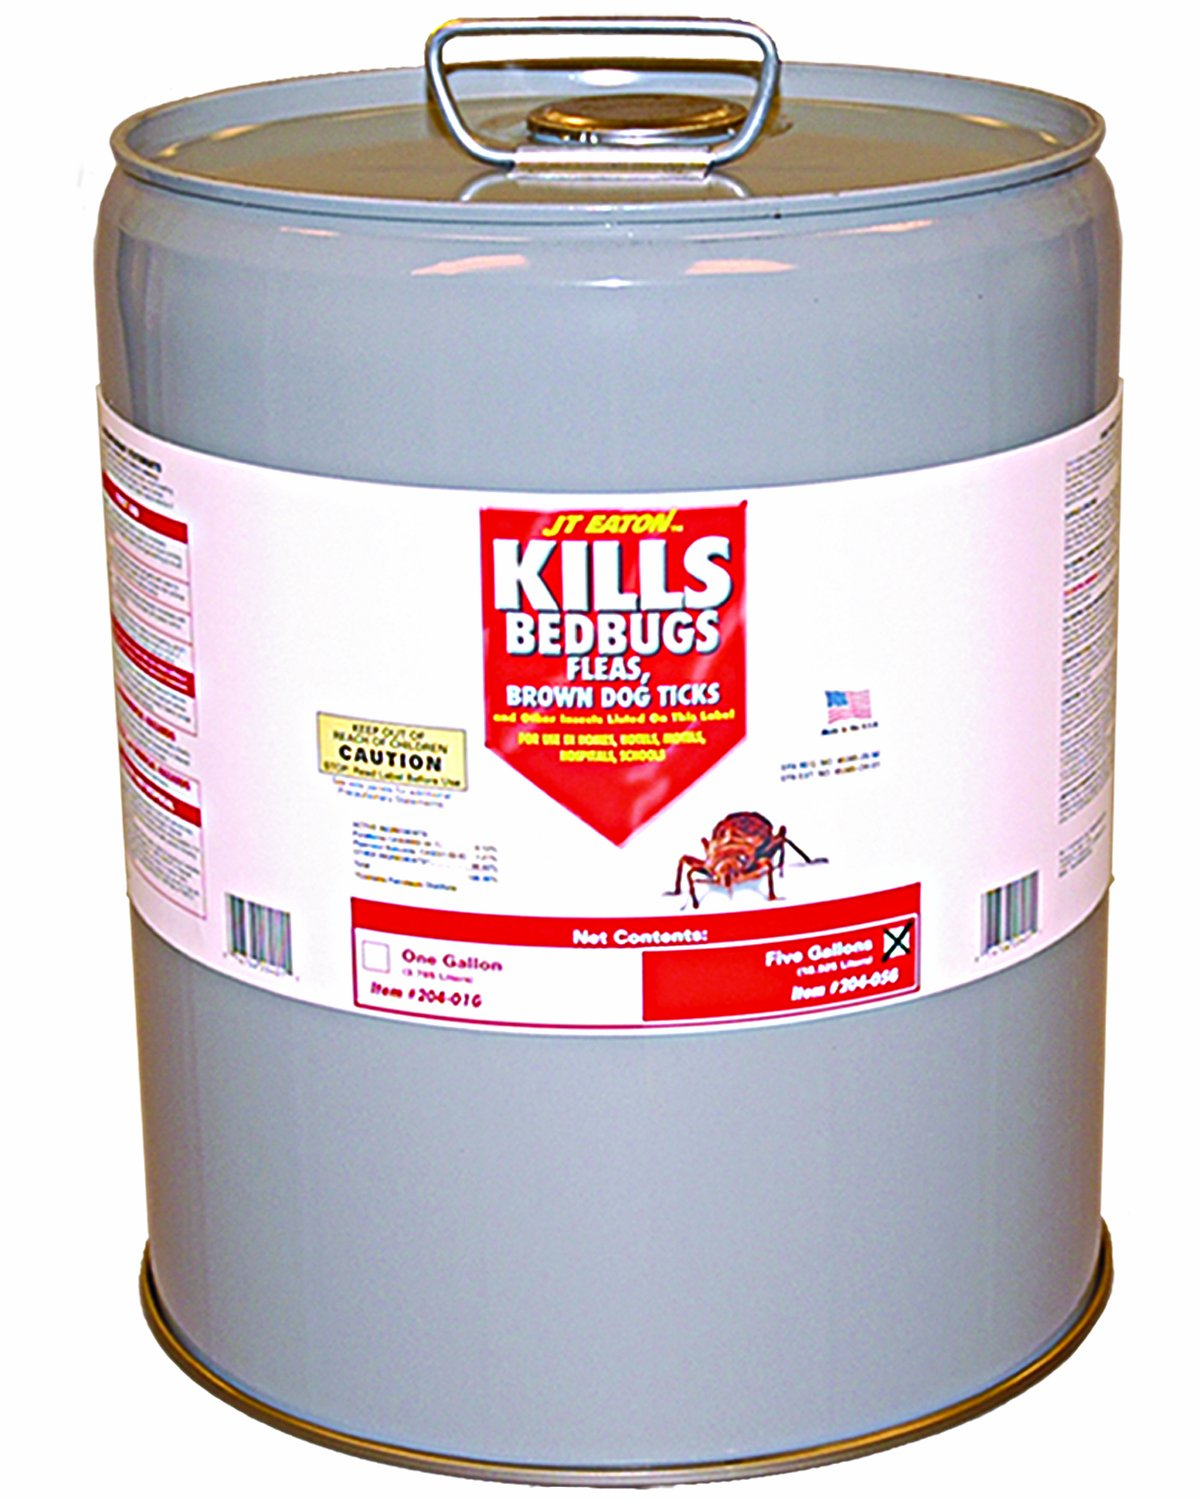 JT Eaton 204-O5G Kills Bedbugs Oil Based Kills Bedbug Spray with Pour Spout, 5 Gallon Pail